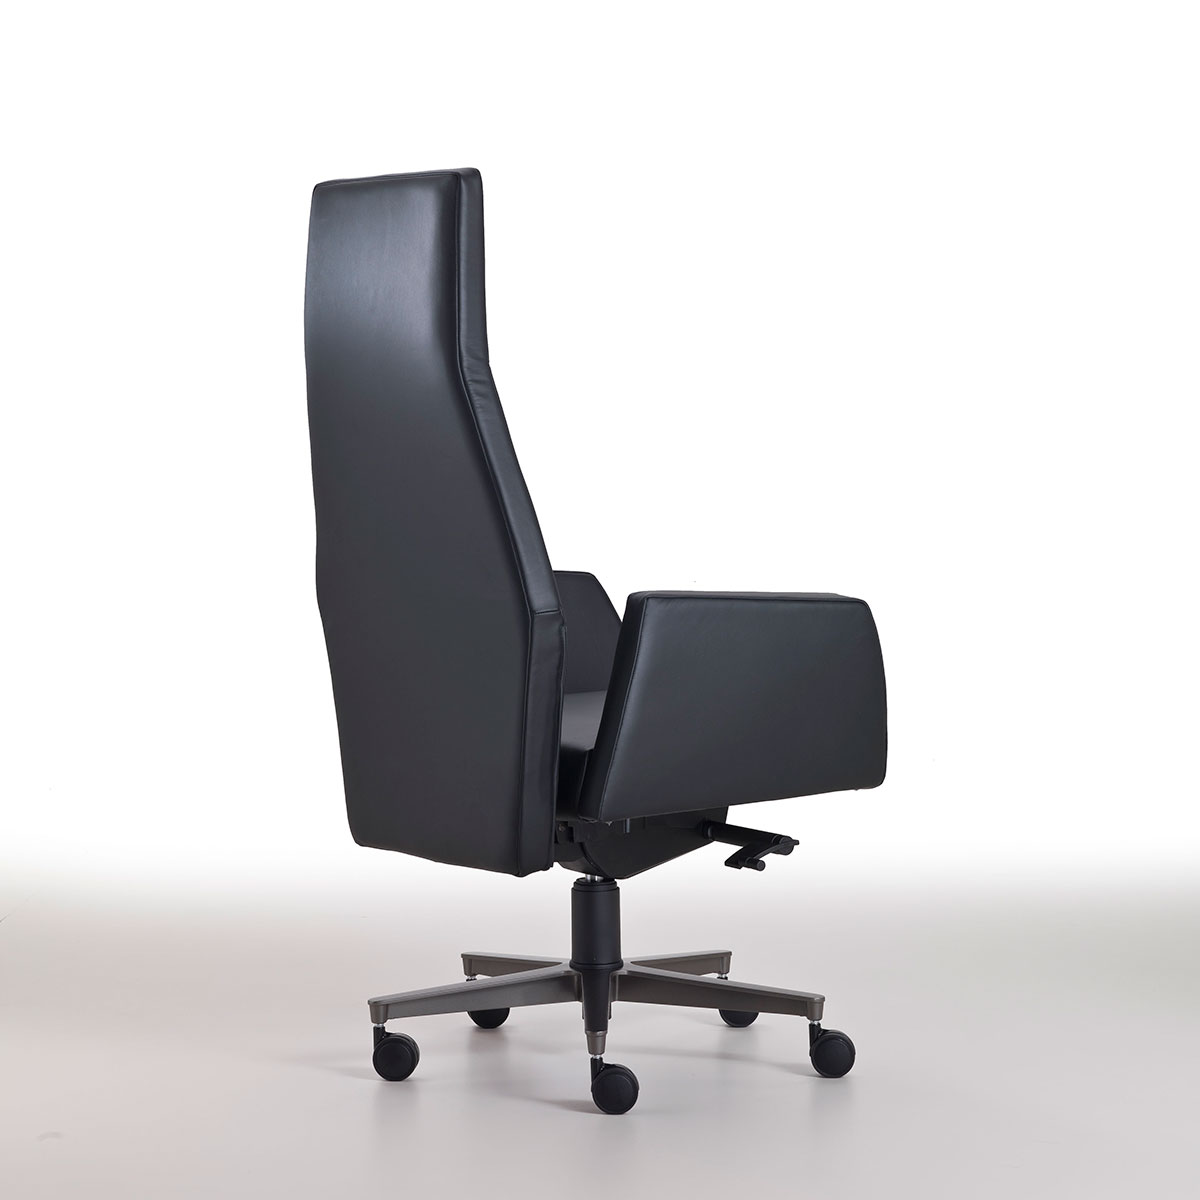 Furnish your prestigious office with a luxurious executive armchair in black leather. Design by Matteo Nunziati. Shop online, free delivery. Made in Italy.